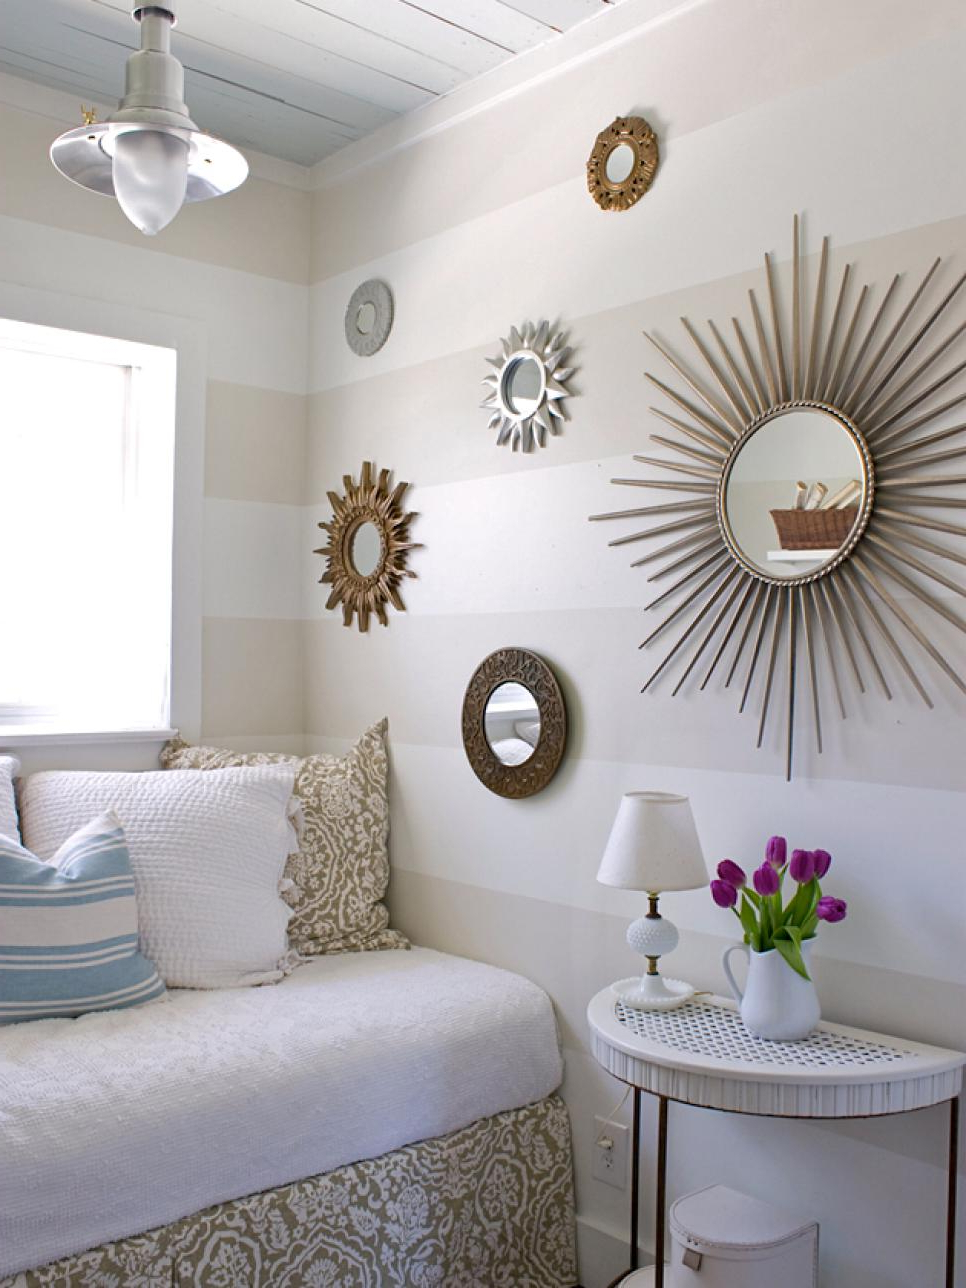 Well Liked Small Decorative Wall Mirrors Regarding Bedroom Small Decorative Wall Mirrors : Small Decorative (View 8 of 20)